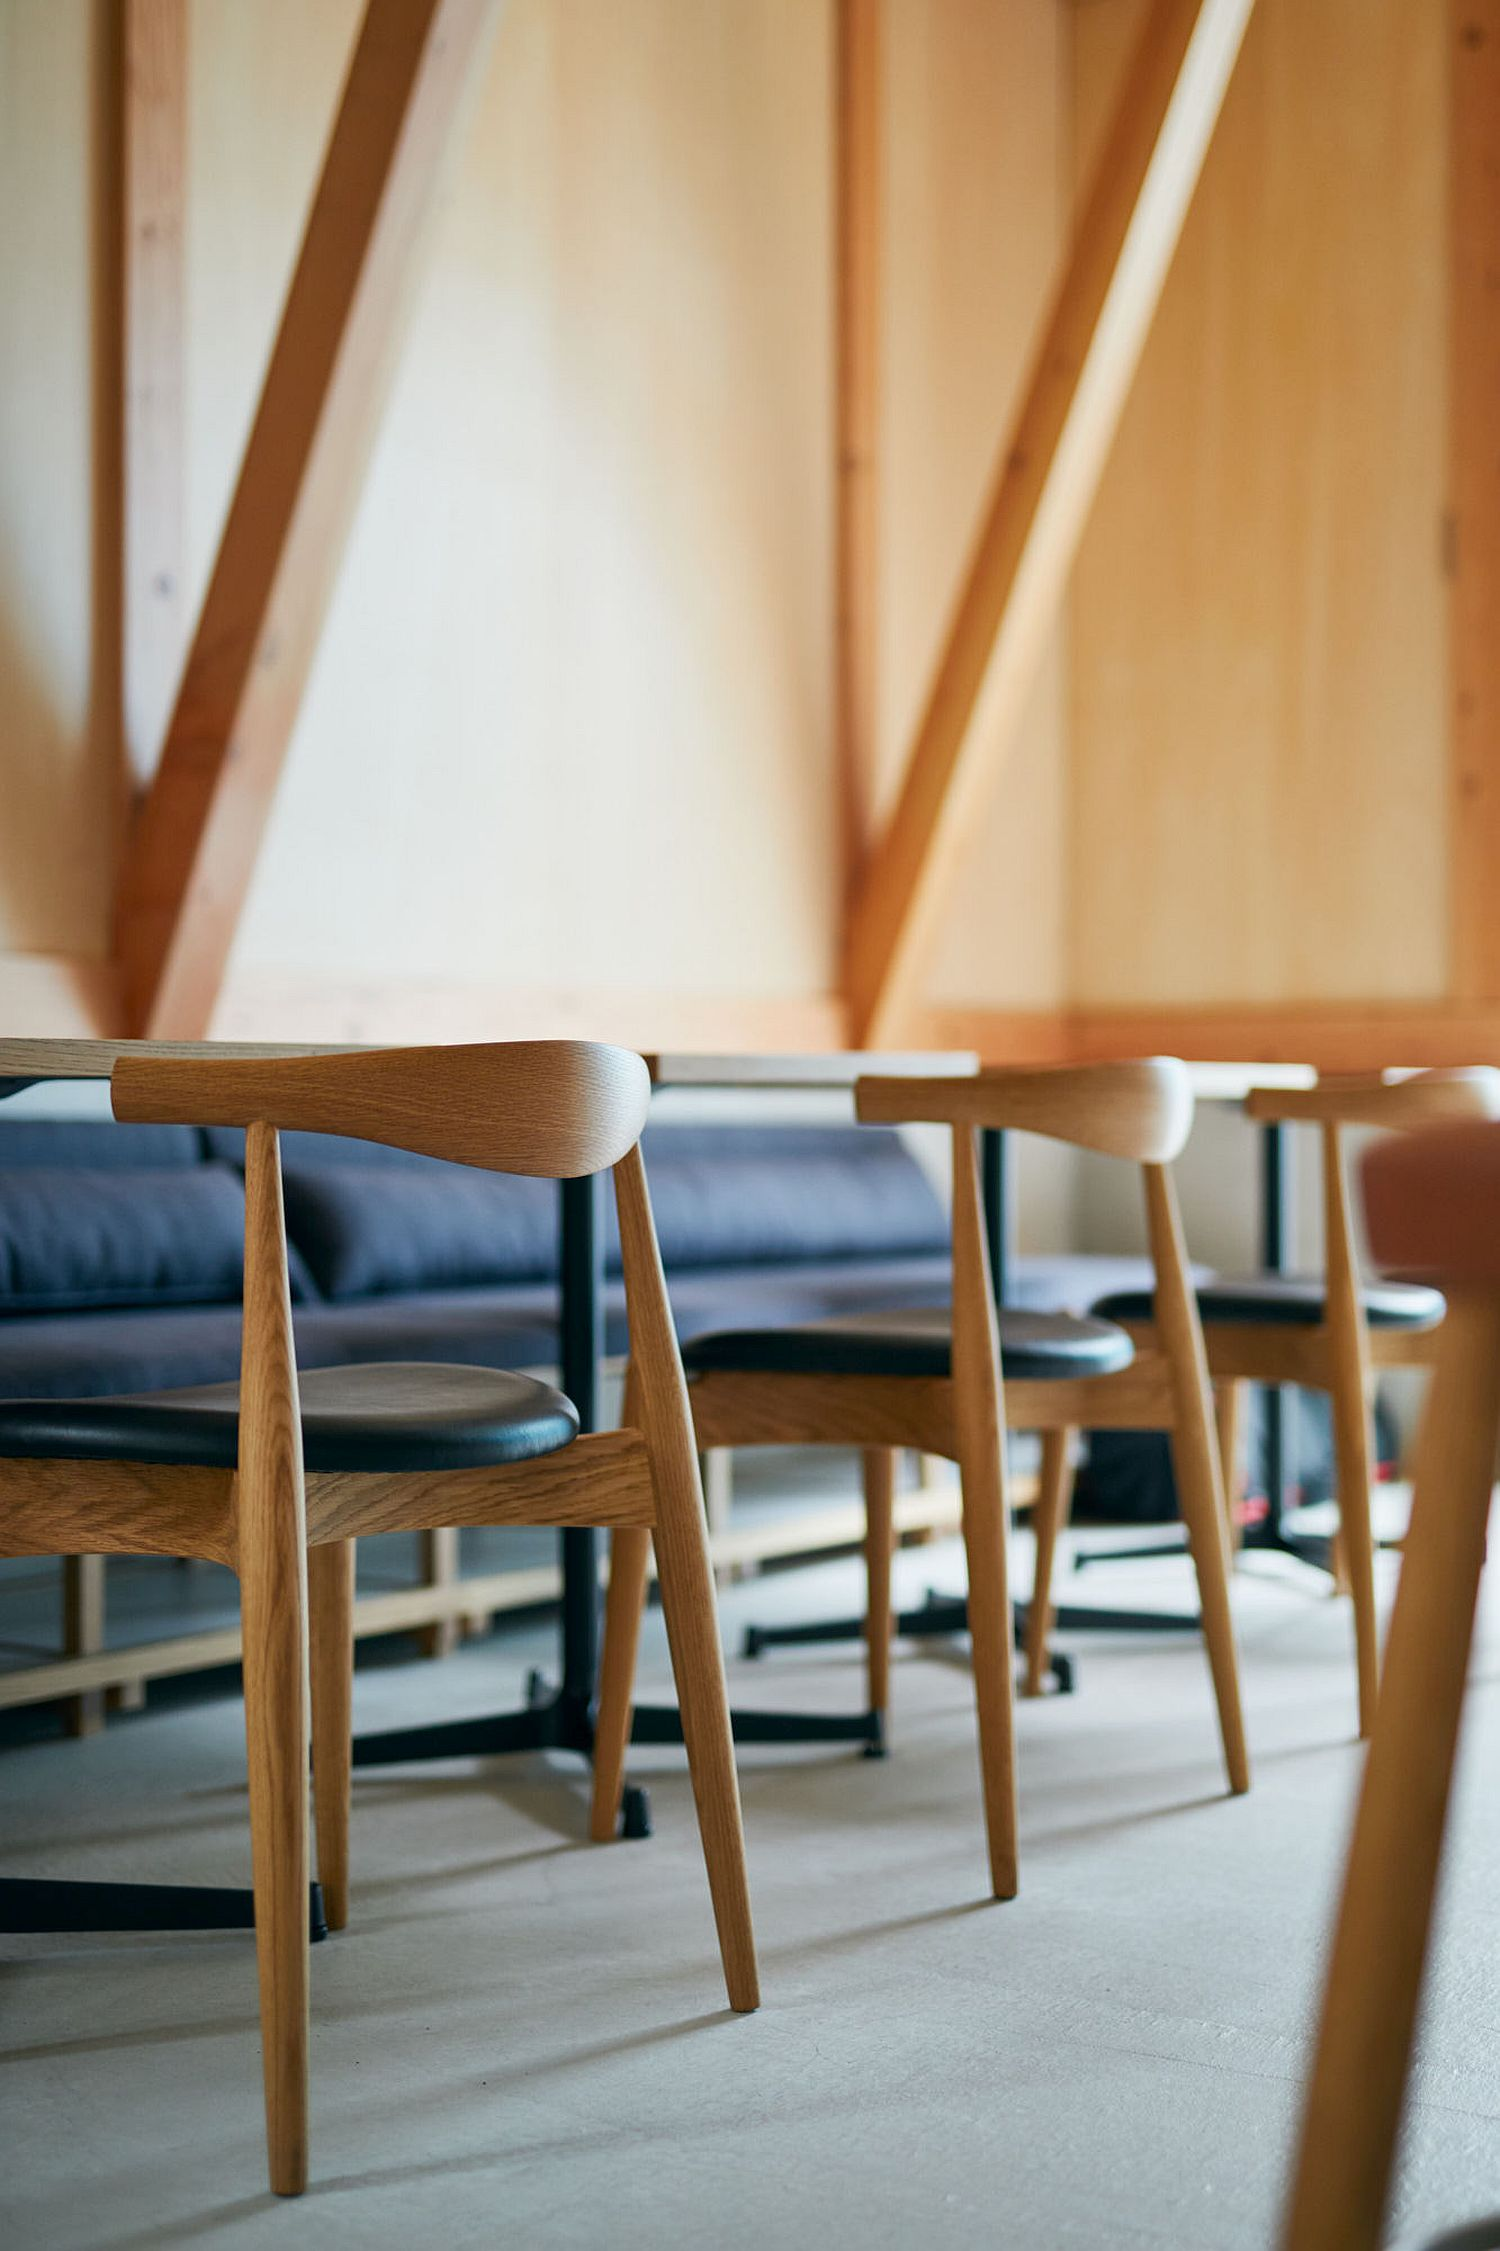 Wooden-stools-inside-the-cafe-add-to-its-minimal-Japanese-style